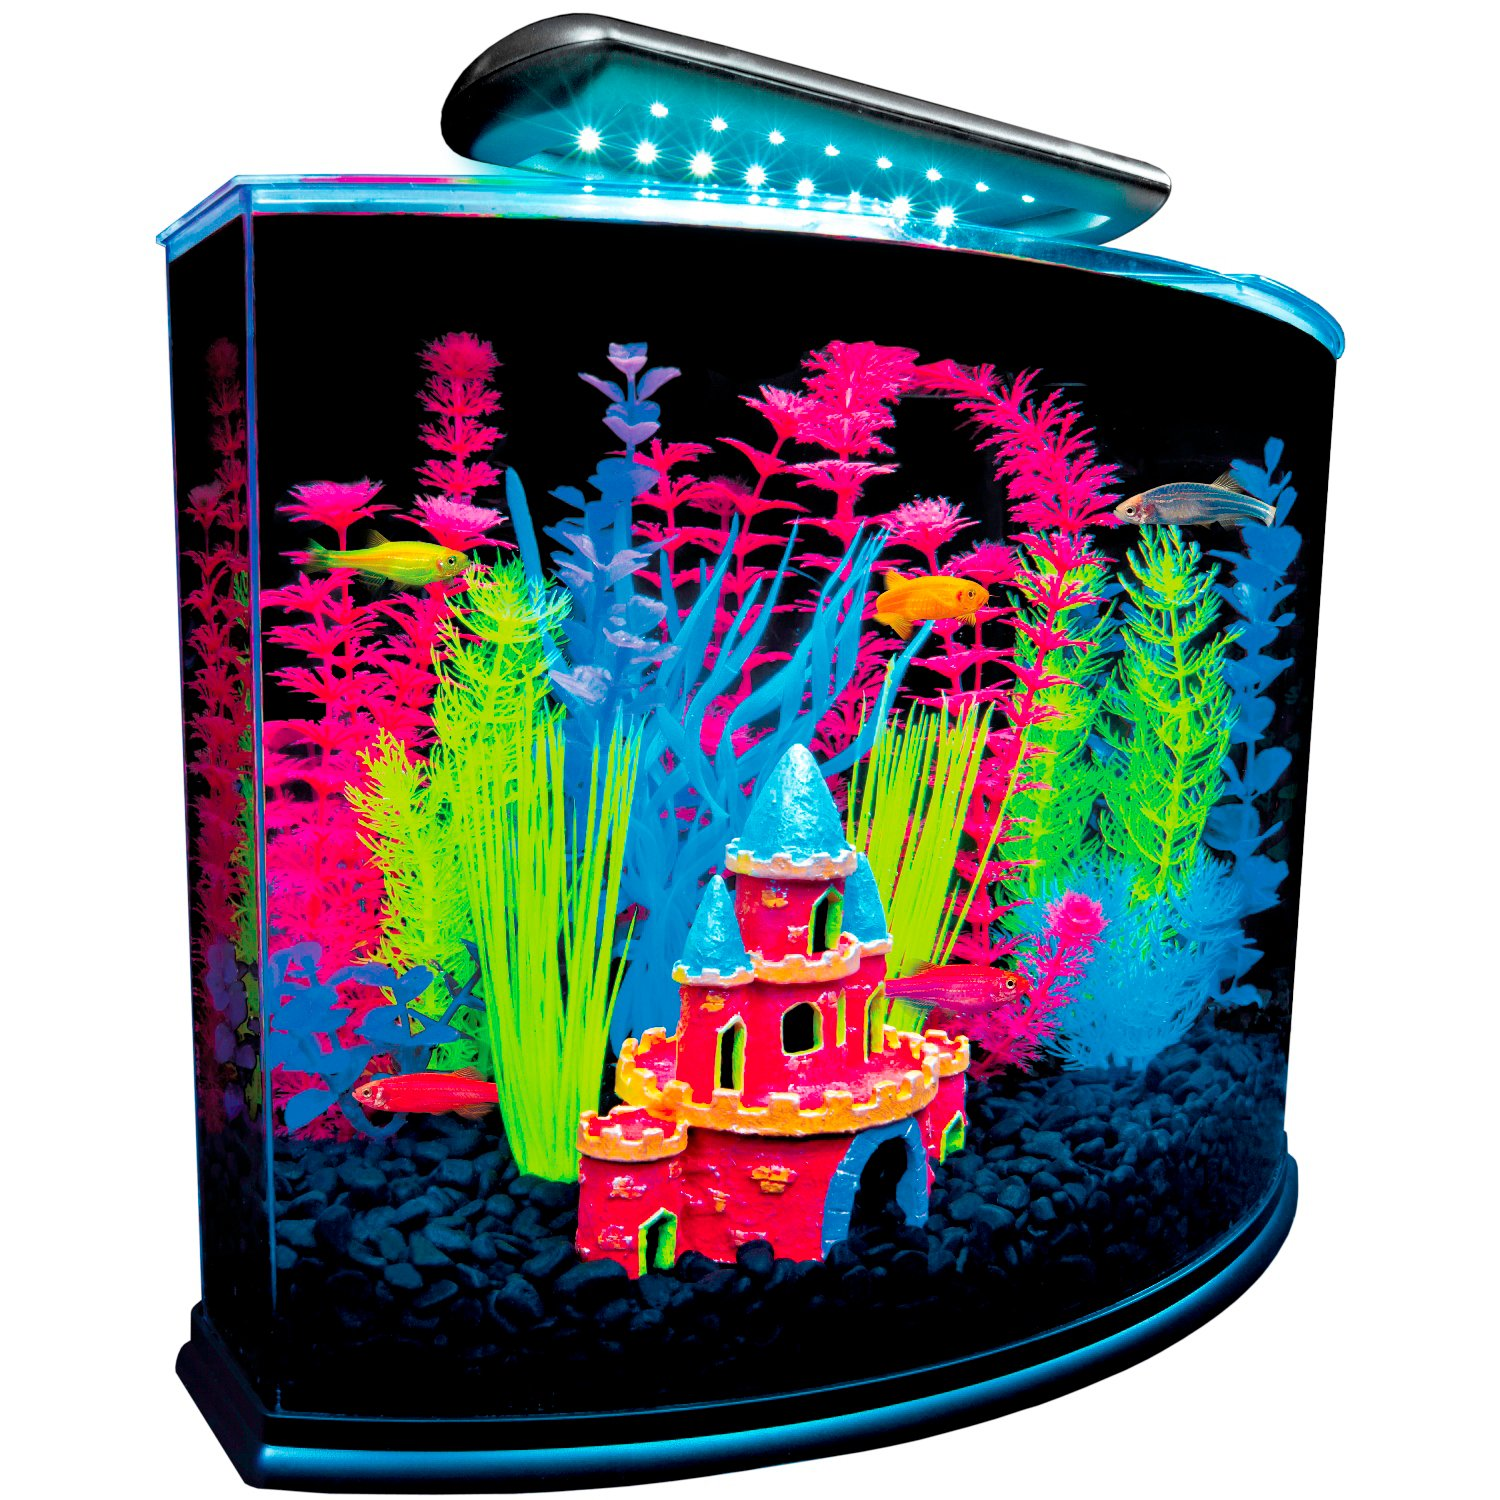 Glofish 5 Gallon Crescent Aquarium Kit Petco